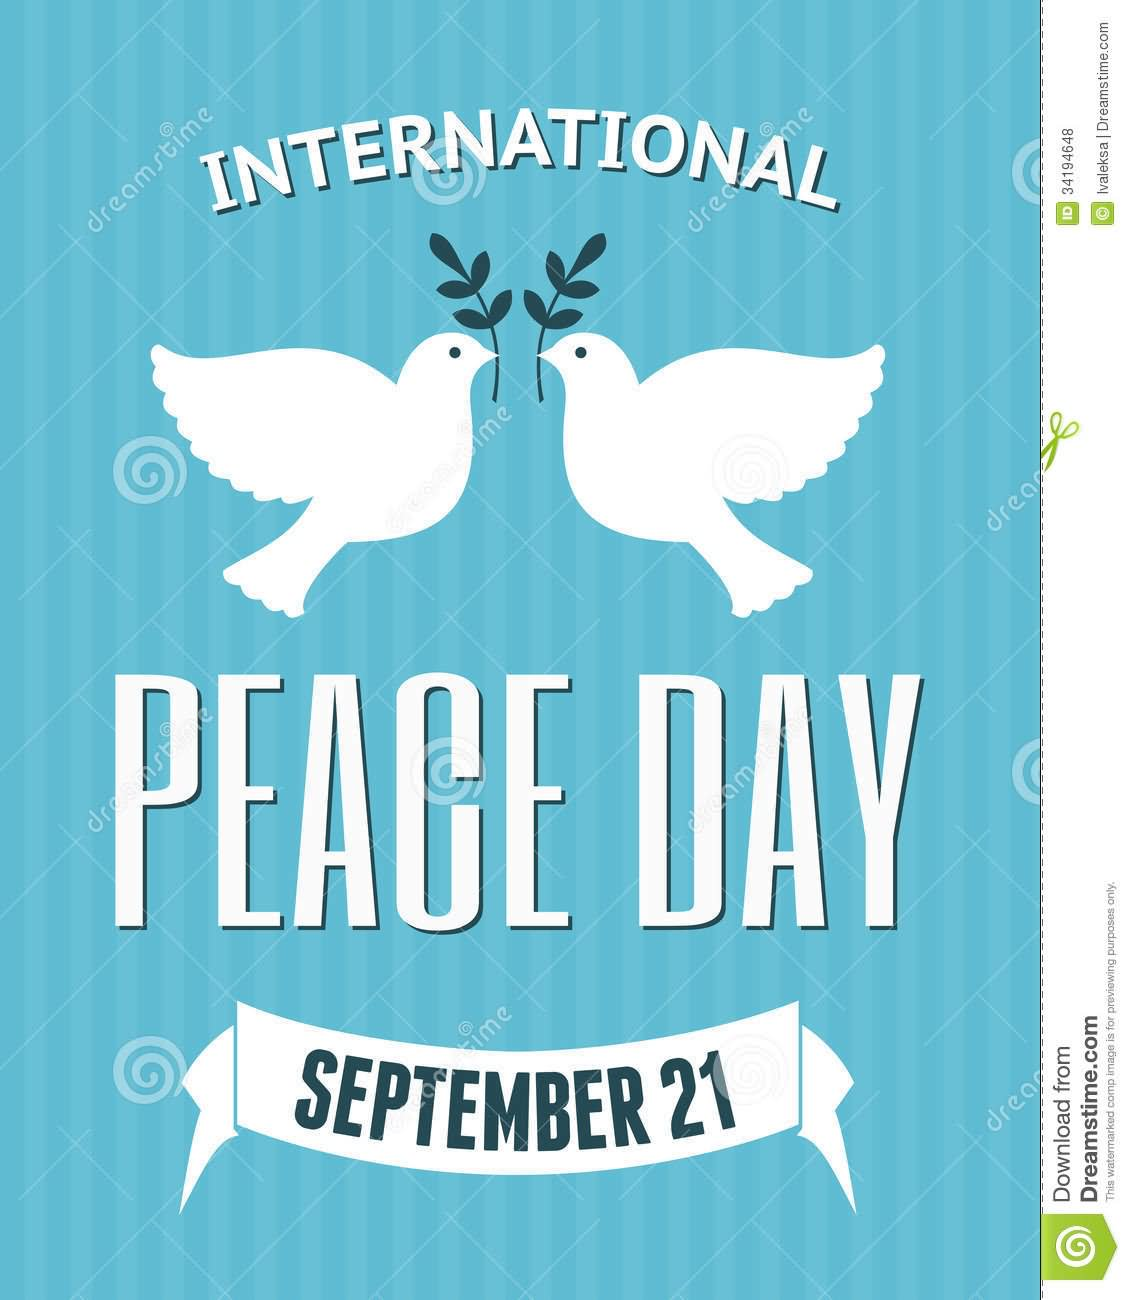 122-International Peace Day Wishes